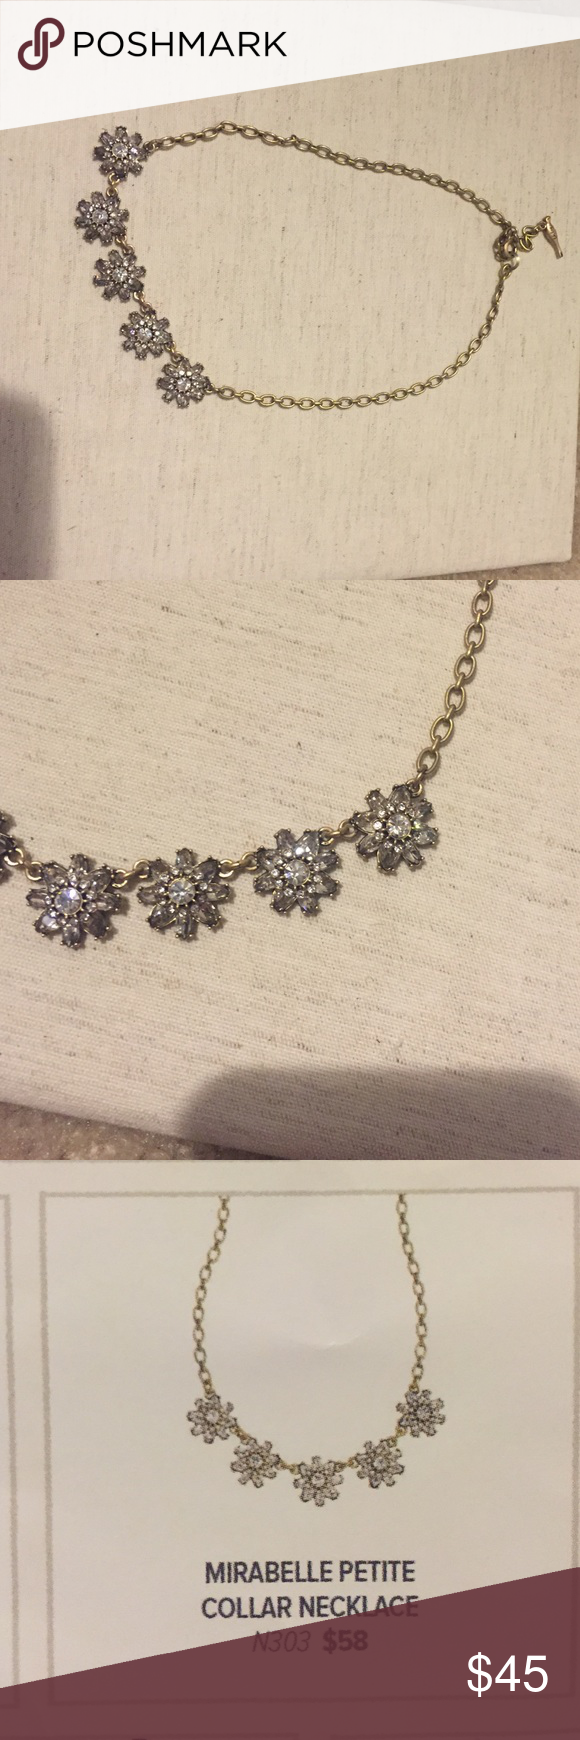 Chloe & Isabel mirabelle petite necklace Retails for $58.00. Necklace is perfect for anybody who loves statement jewelry but hates the heavy necklaces. Never worn, comes in plastic bag. Selling from personal collection. Chloe + Isabel Jewelry Necklaces